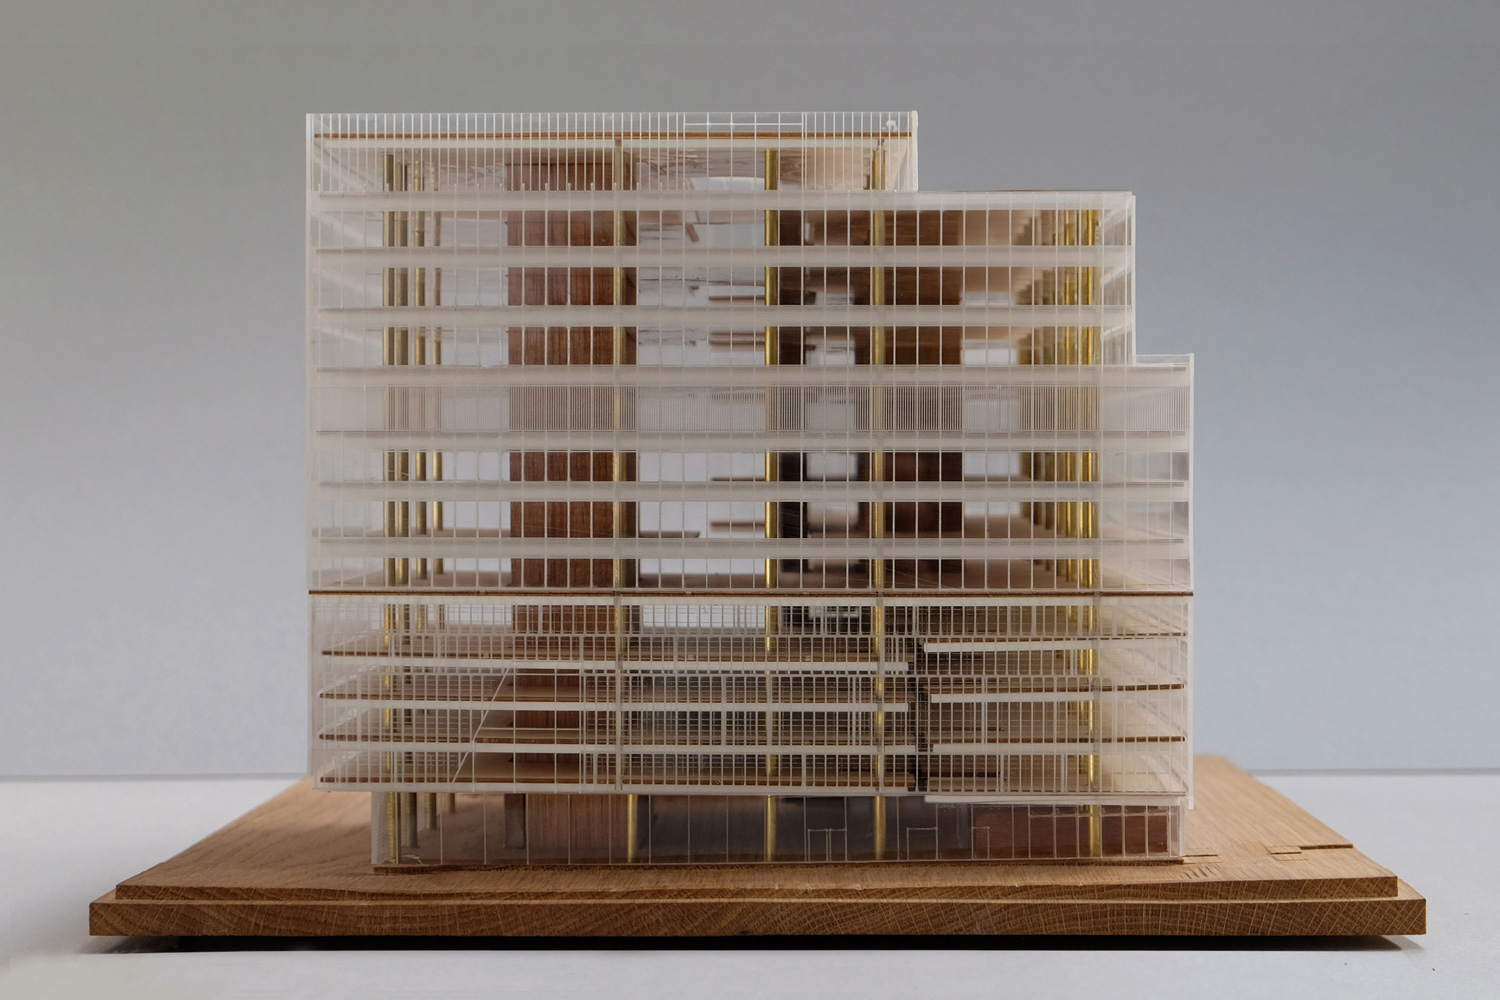 Woods Bagot – Commonwealth bank, 2015, 1:100